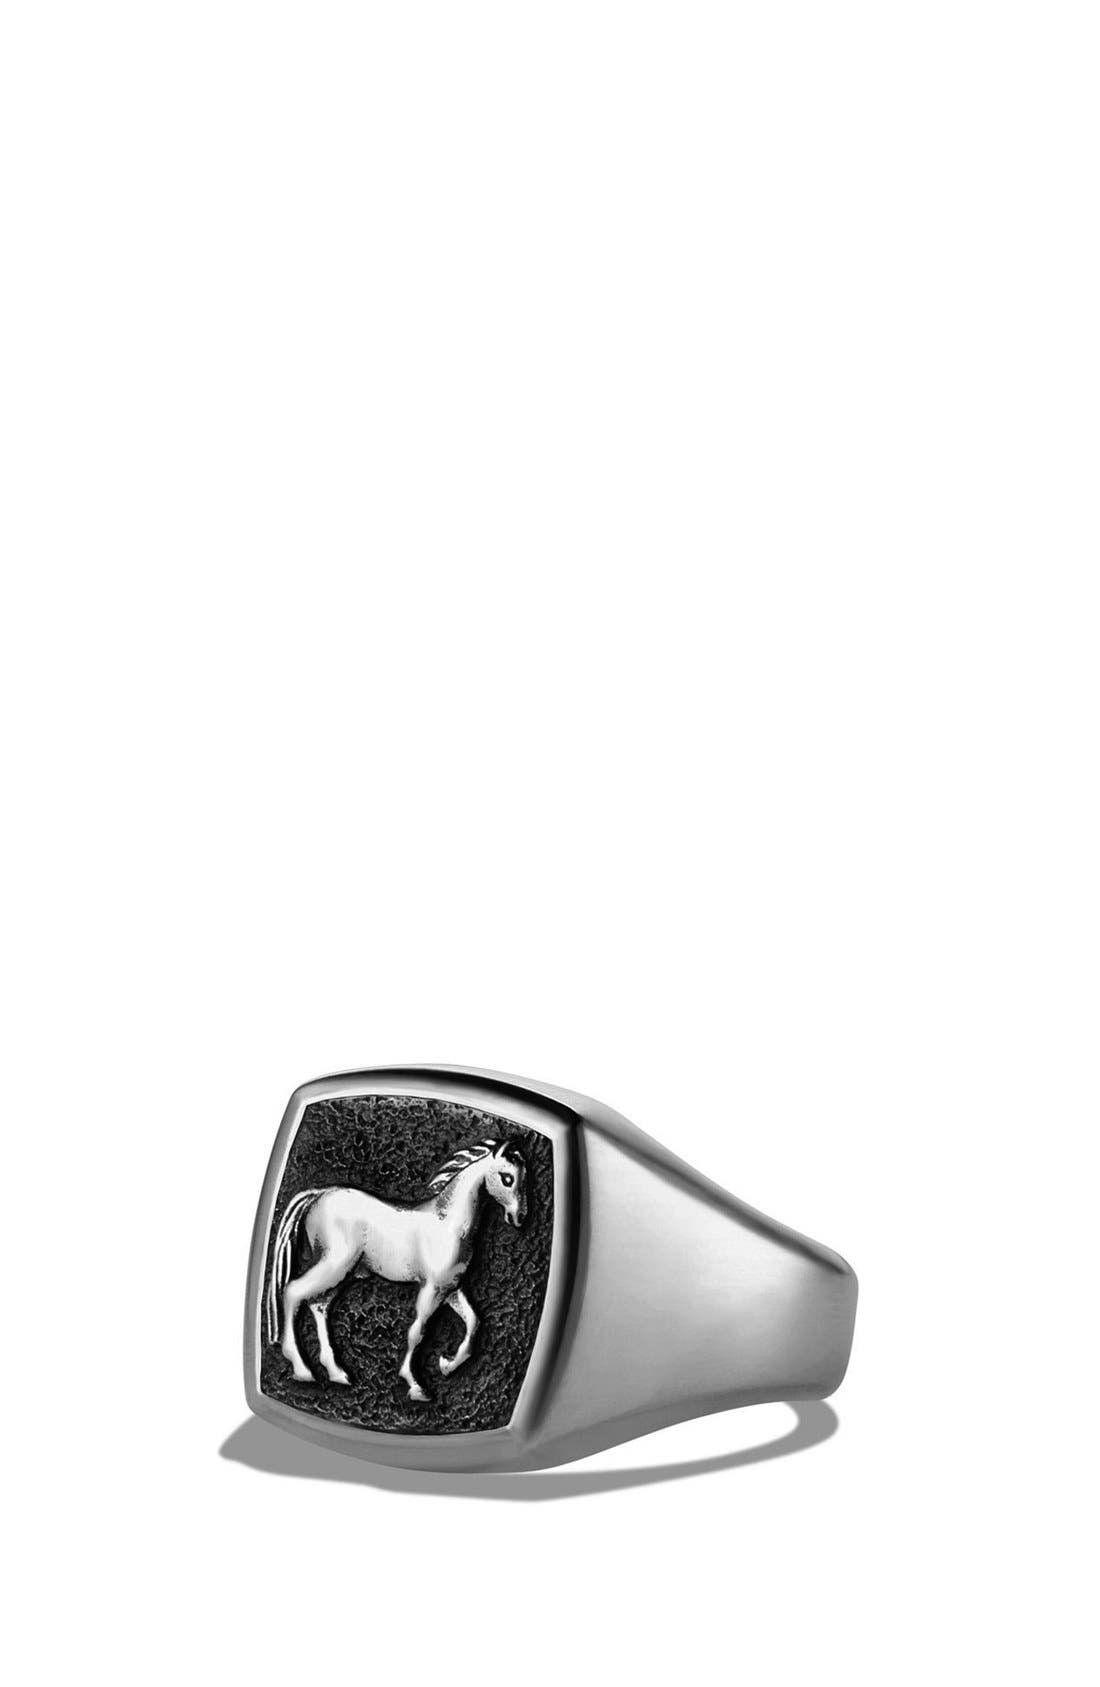 David Yurman 'Petrvs' Horse Pinky Ring